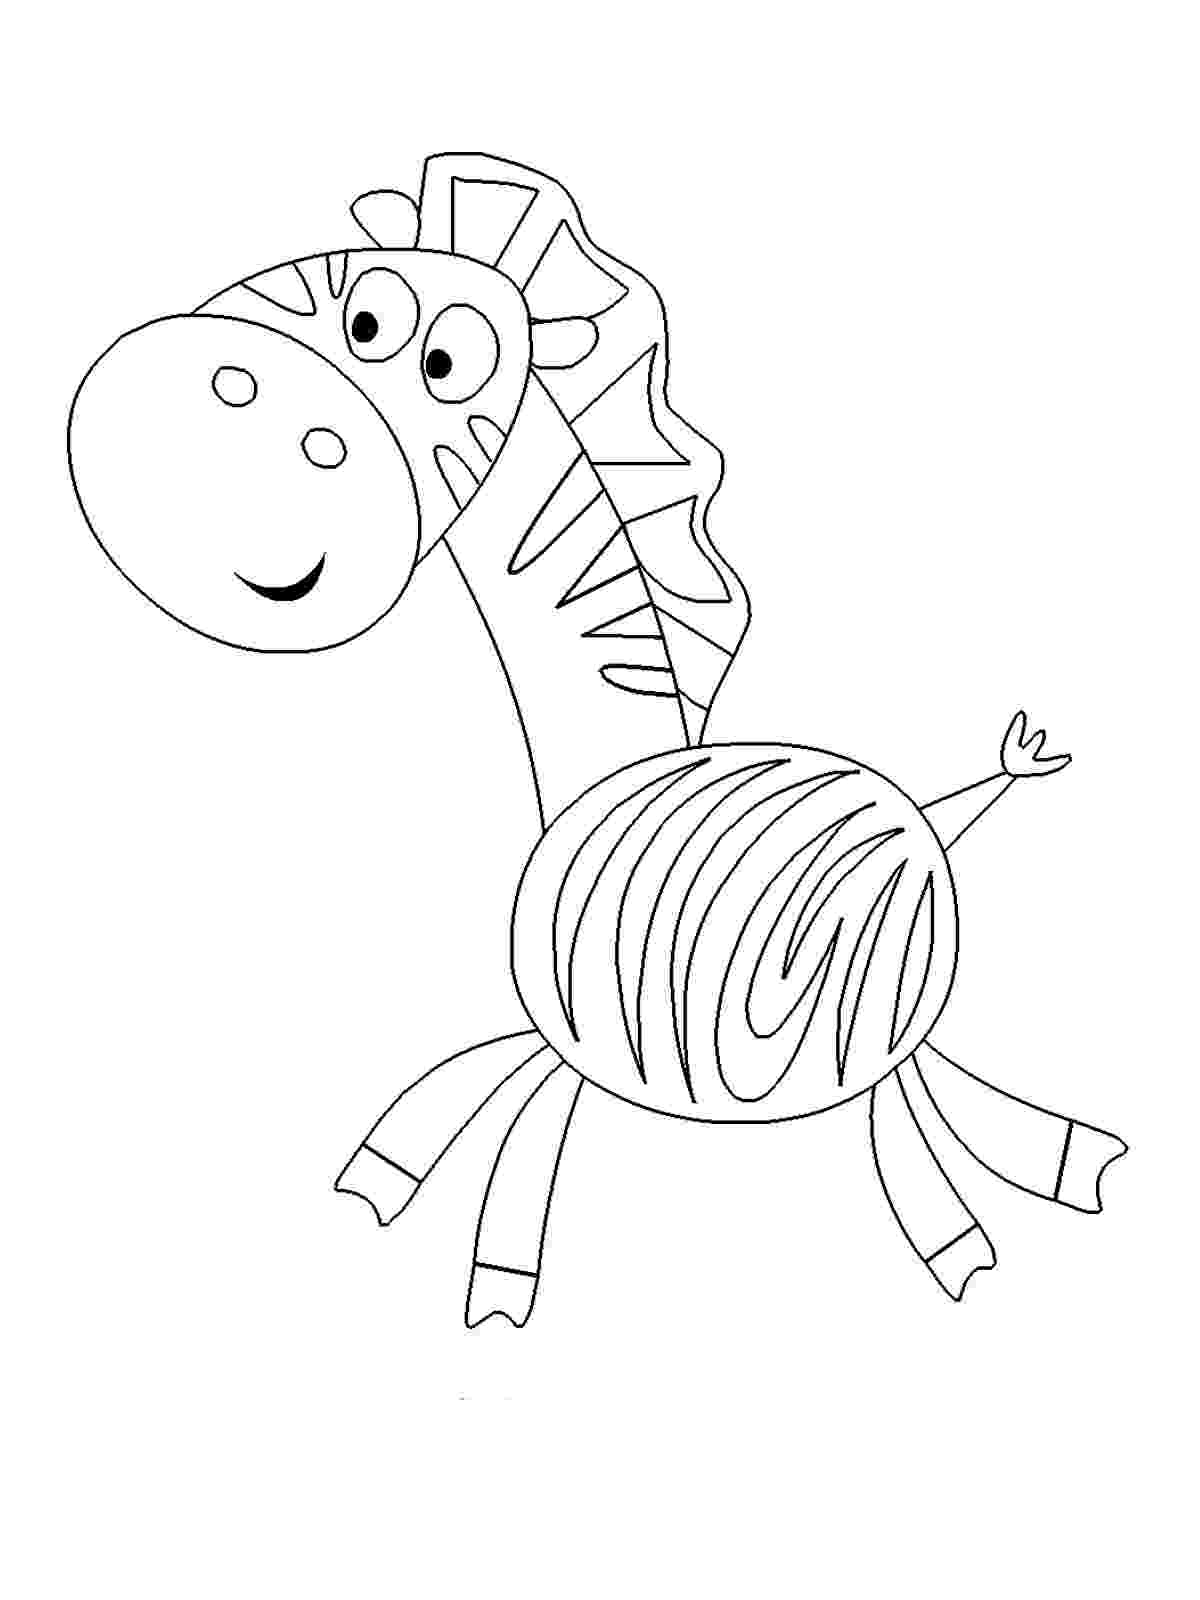 free printable coloring pages for children free printable chibi coloring pages for kids coloring children pages free for printable